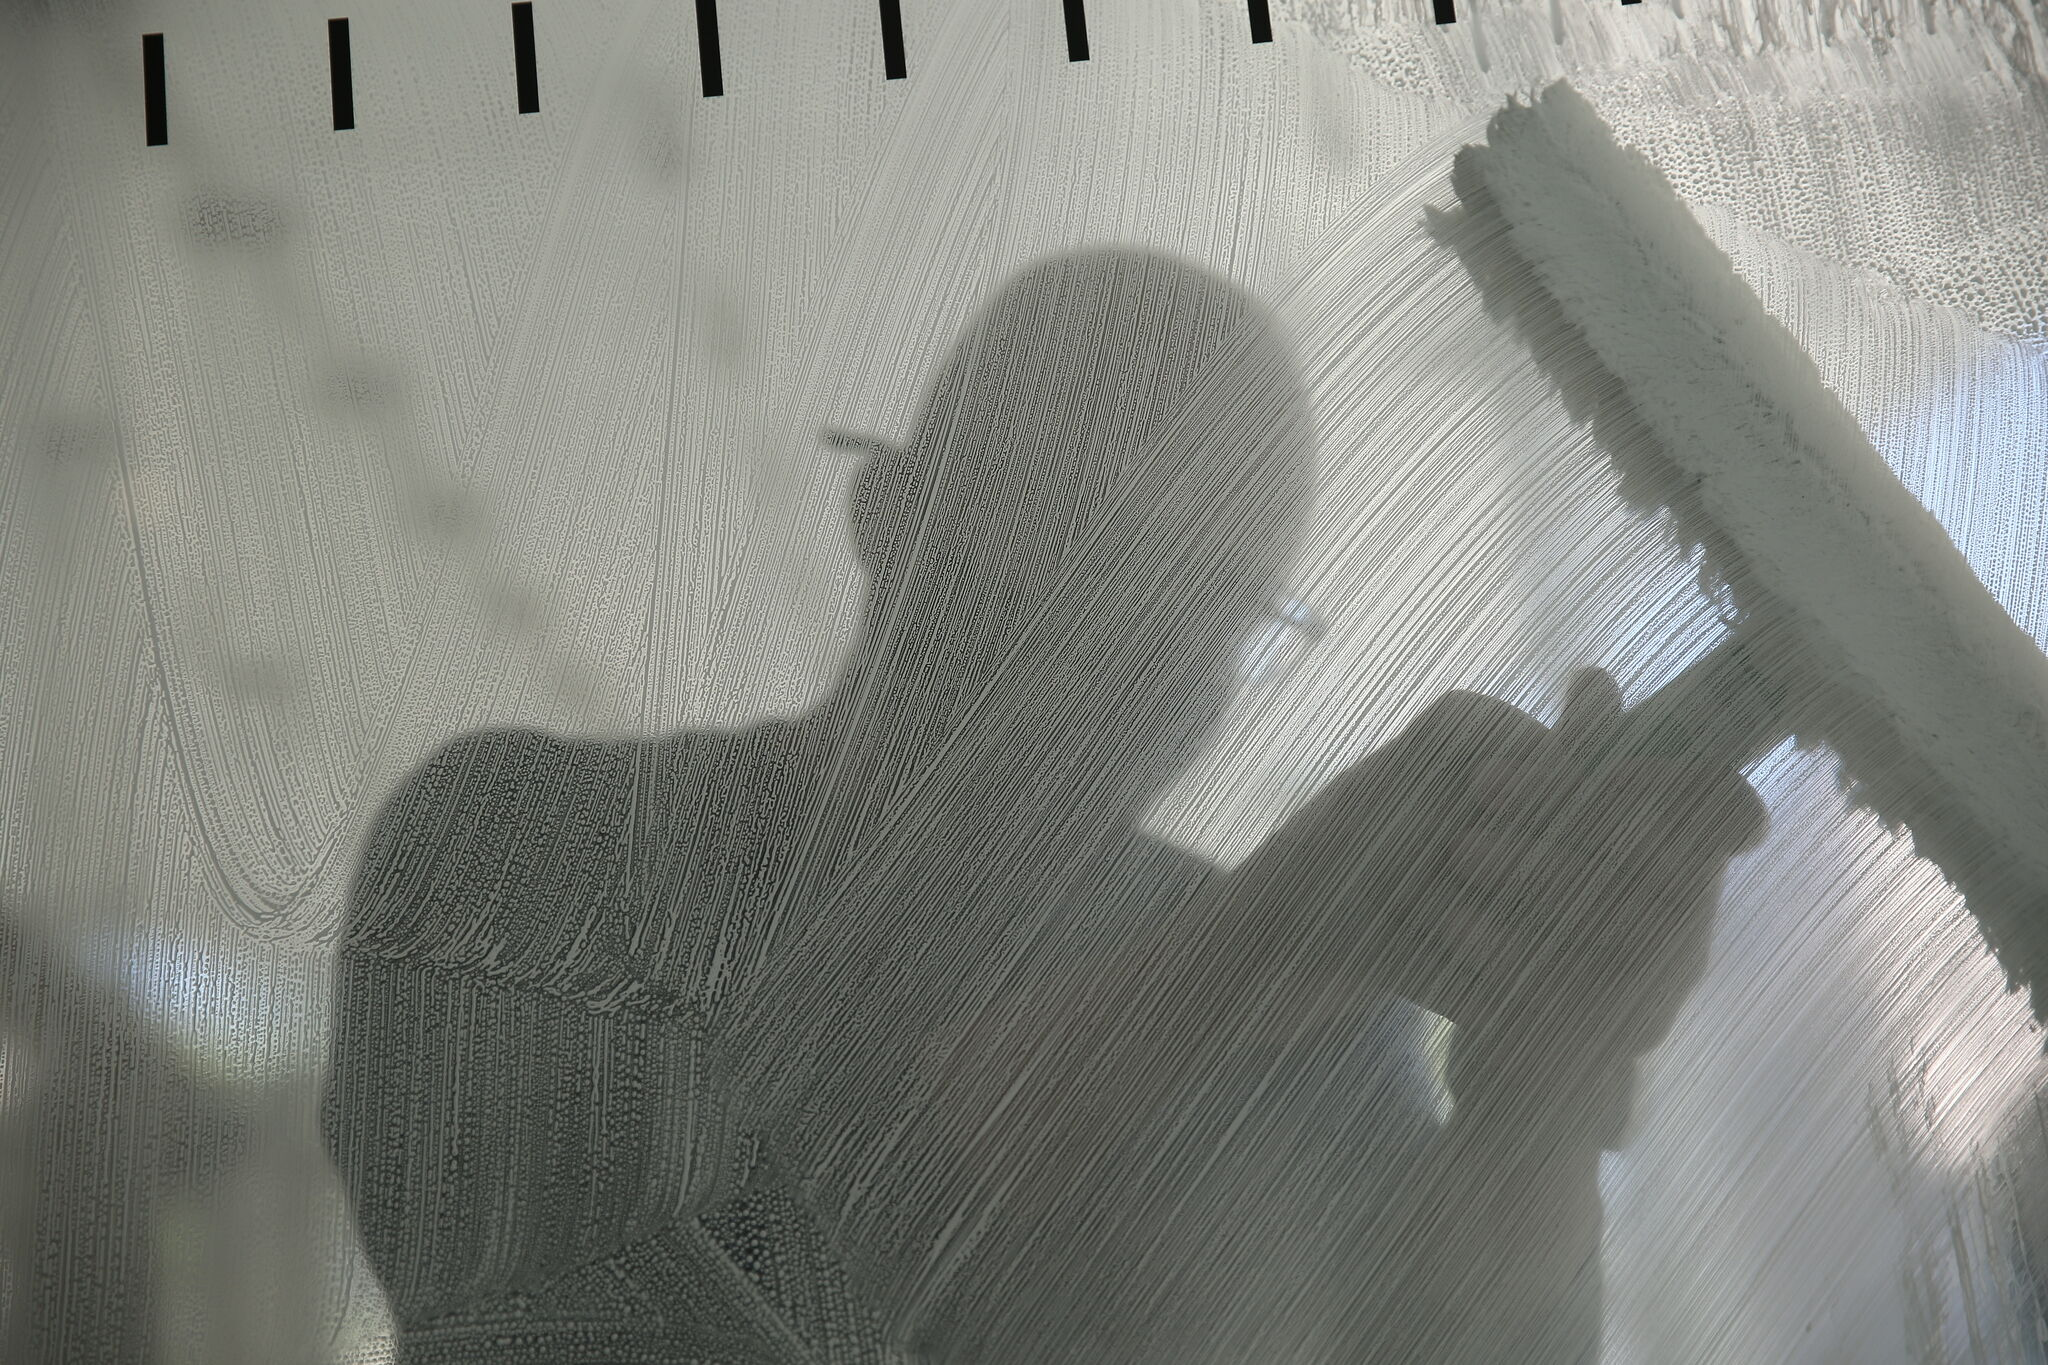 A person cleaning a glass window with a window wiper.